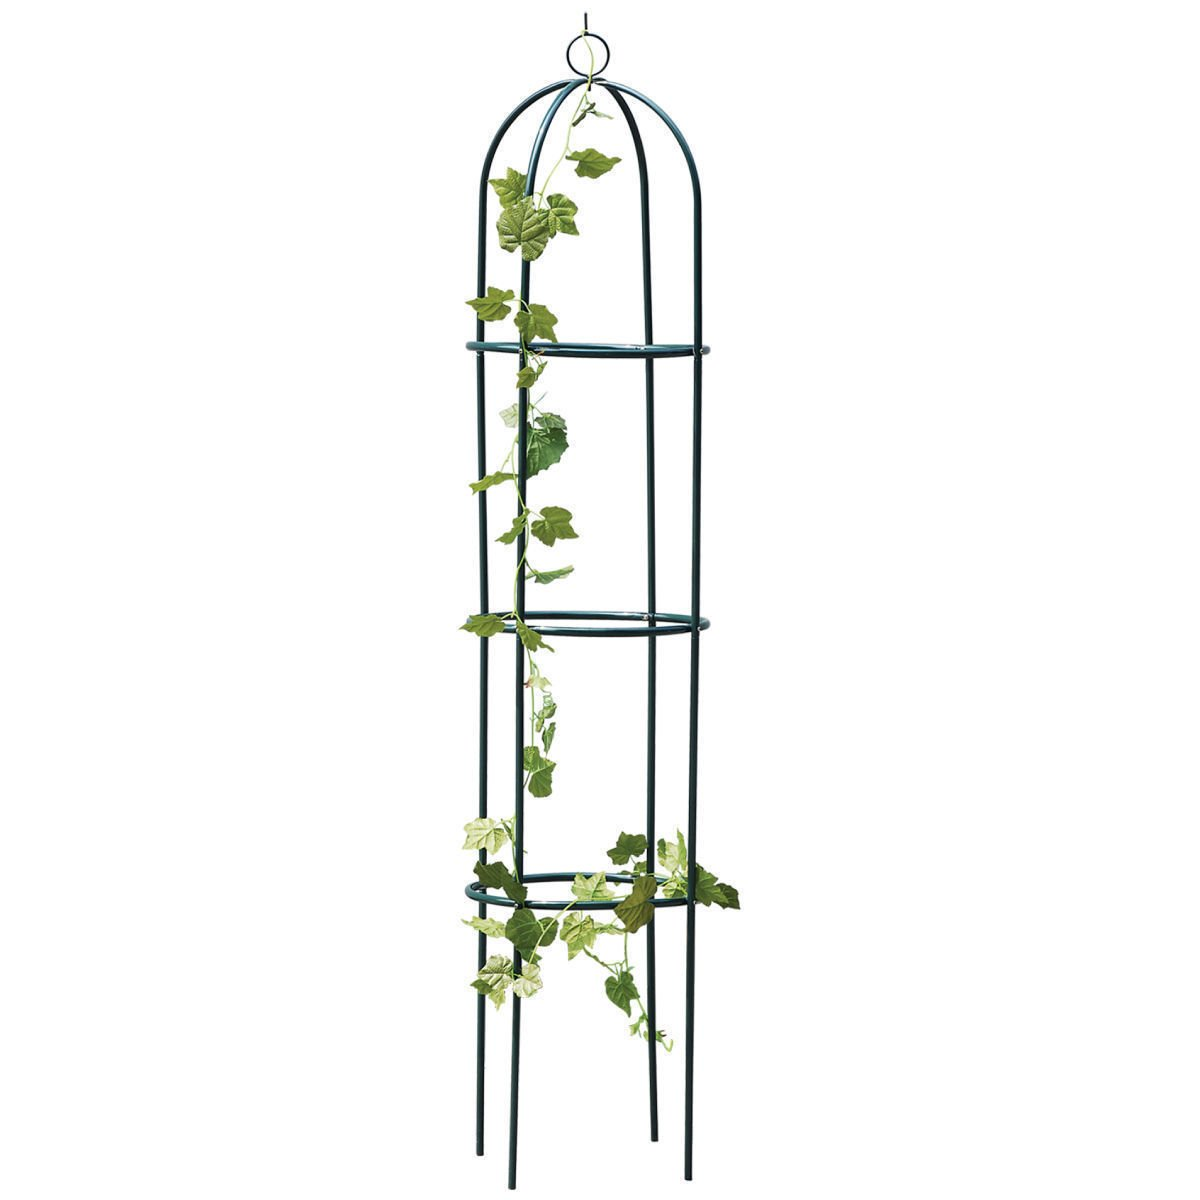 1.9M Outdoor Garden Black Metal Obelisk Climbing Plant Support Frame Ivy Trellis - A great addition for your garden this summer, perfect for climbing plants and bushes.